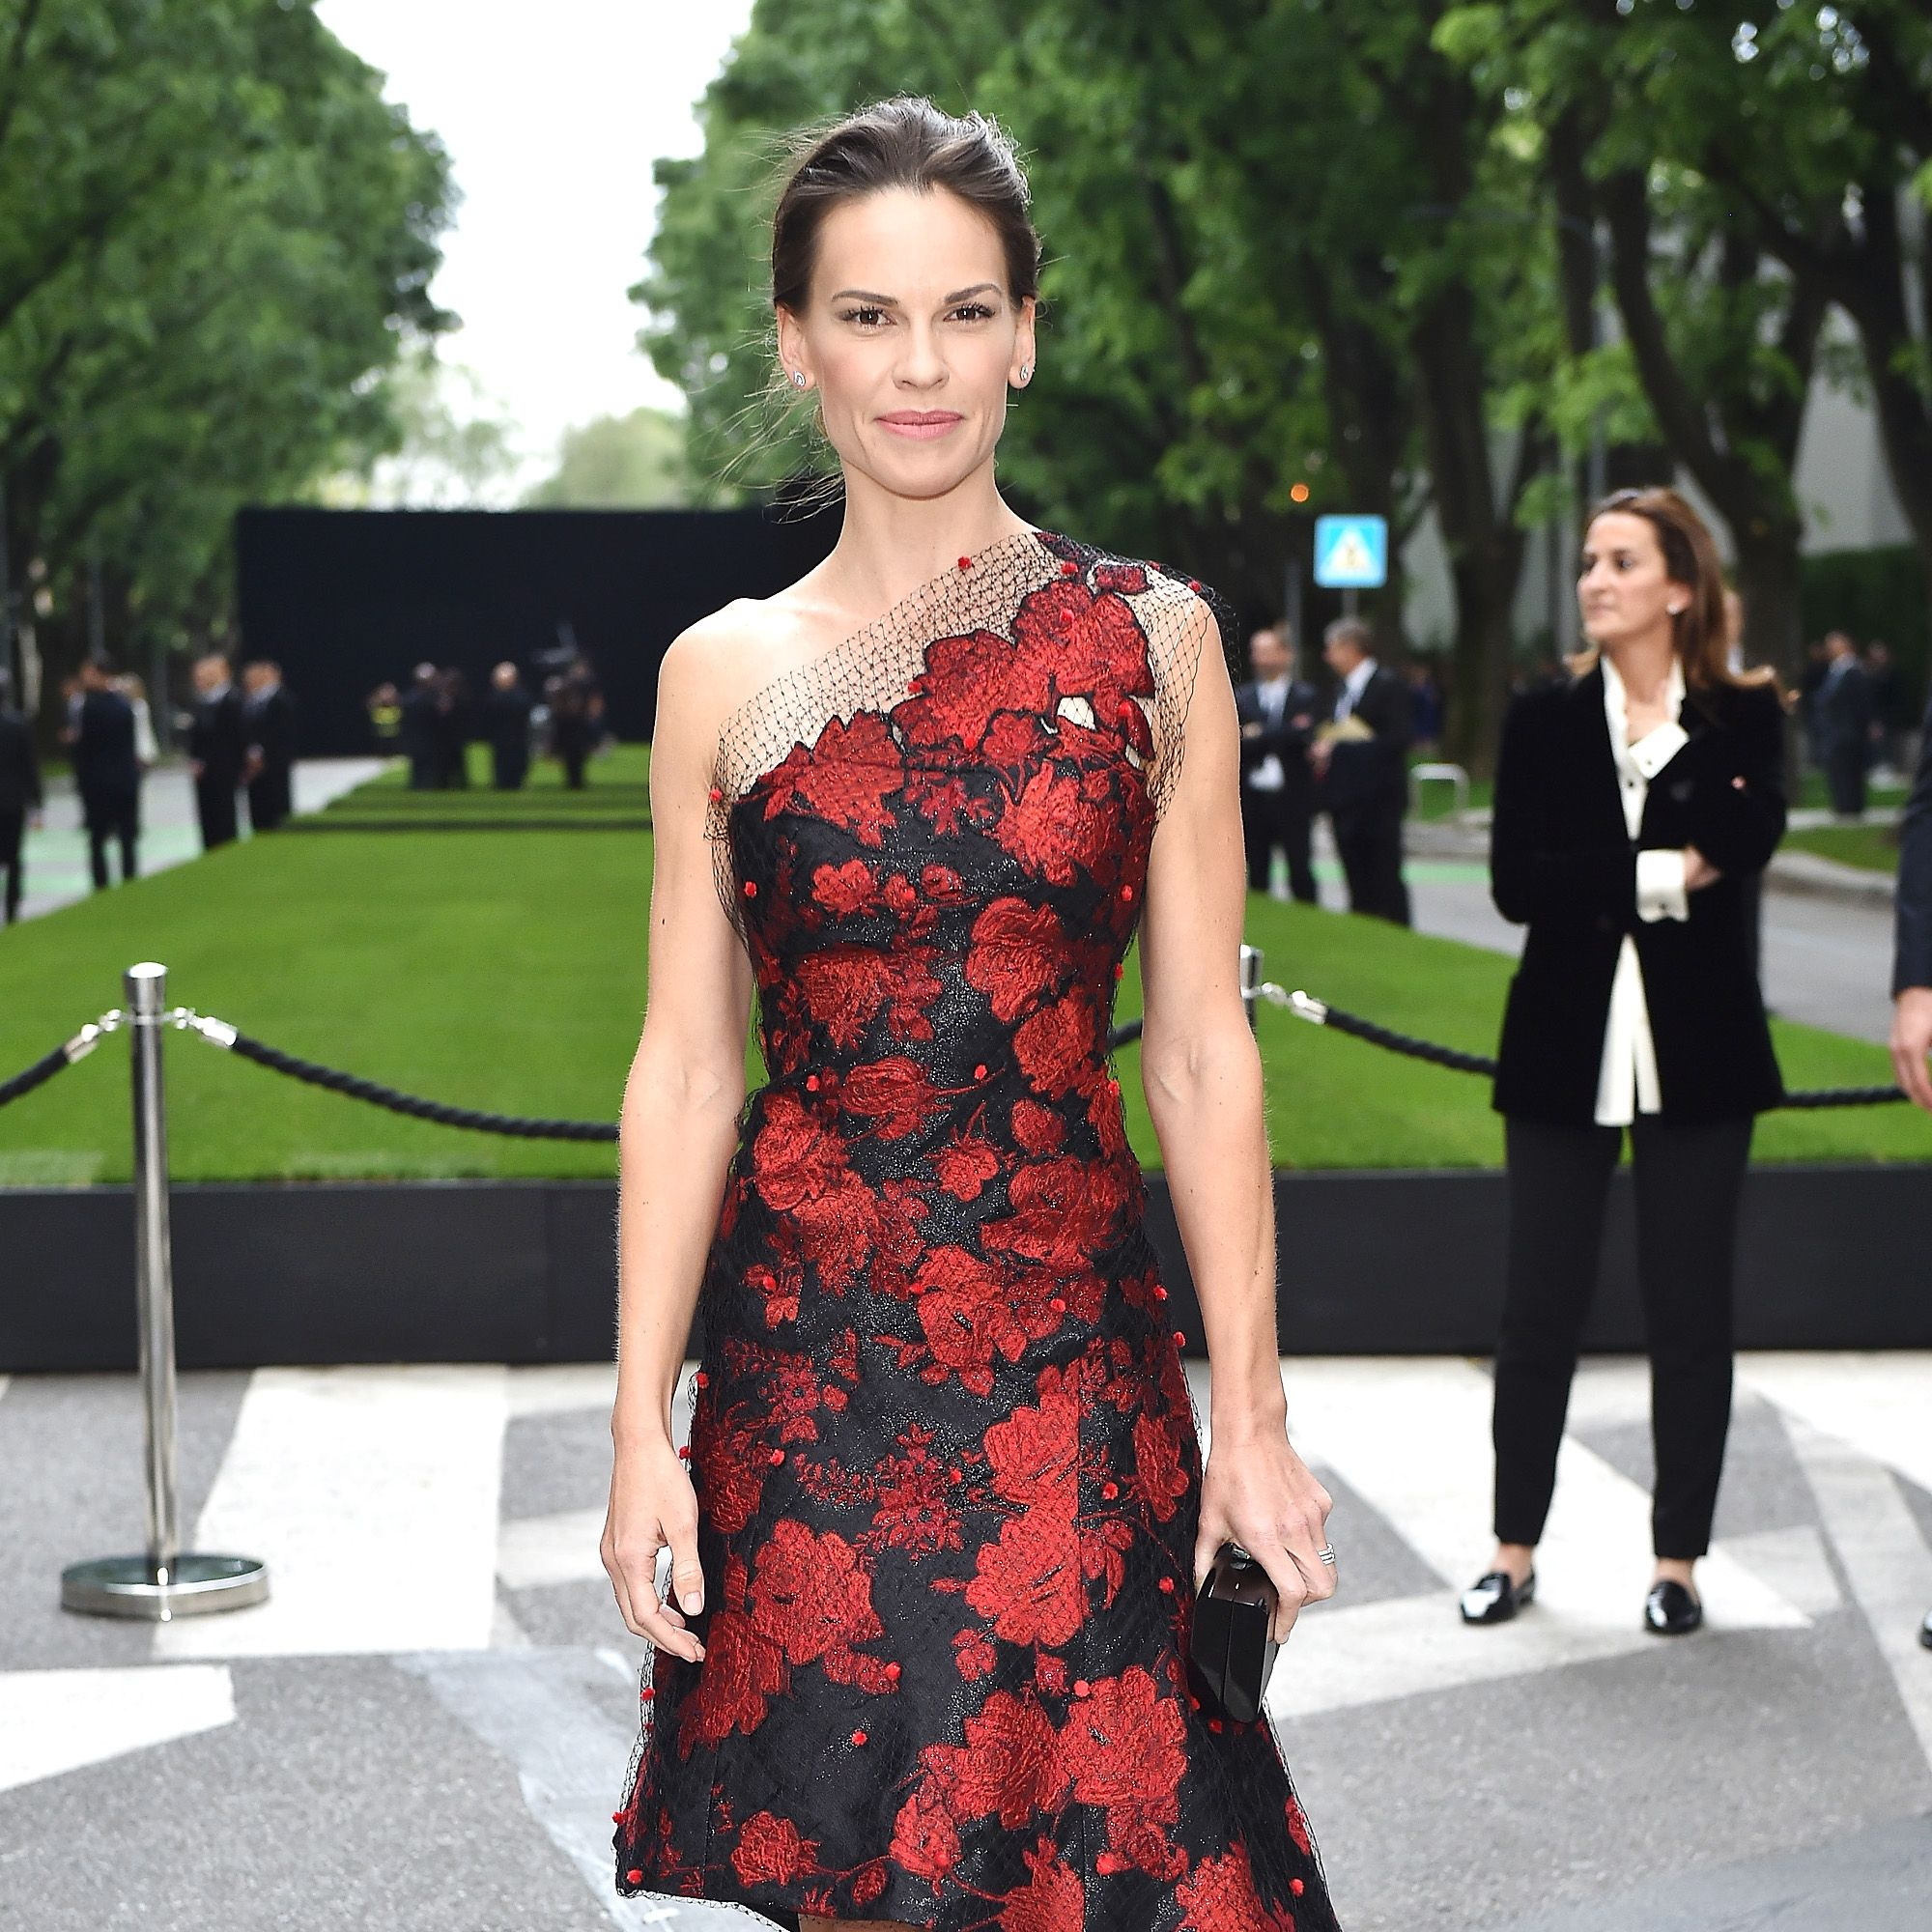 MILAN, ITALY - APRIL 30:  Hilary Swank attends the Giorgio Armani 40th Anniversary  Silos Opening And Cocktail Reception on April 30, 2015 in Milan, Italy.  (Photo by Jacopo Raule/Getty Images  for Giorgio Armani)